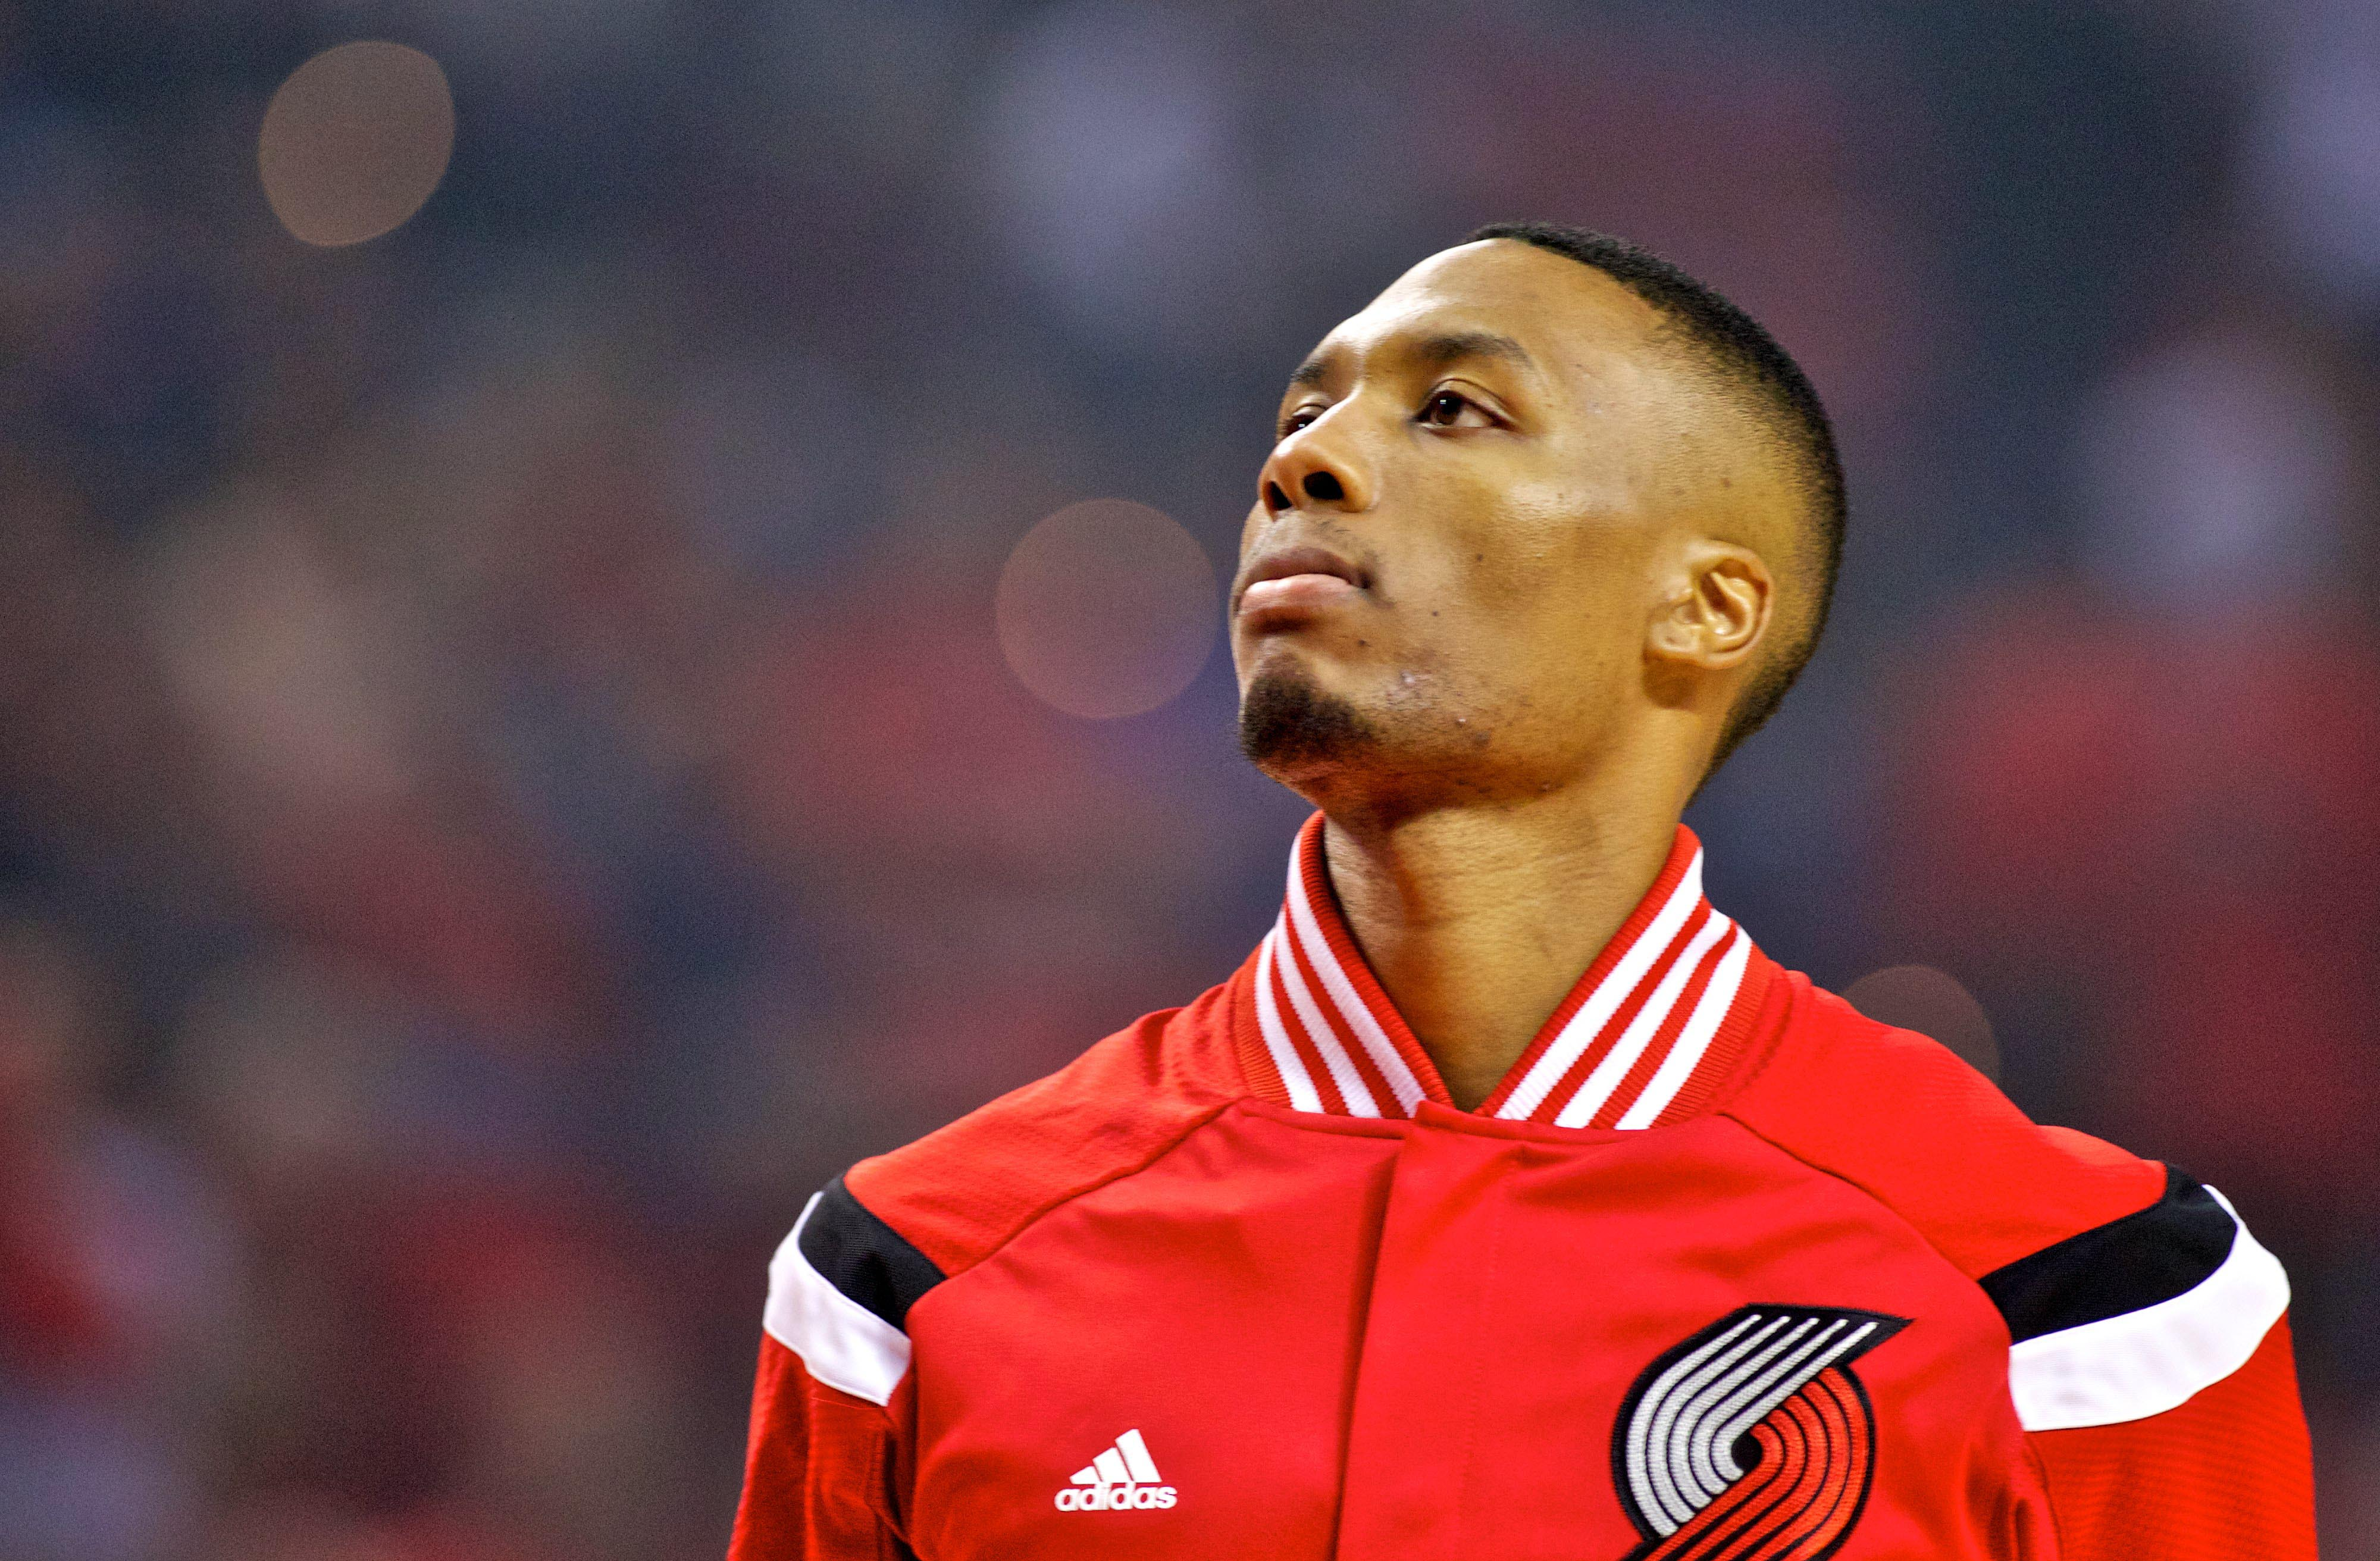 Damian Lillard Wallpapers High Resolution and Quality Download